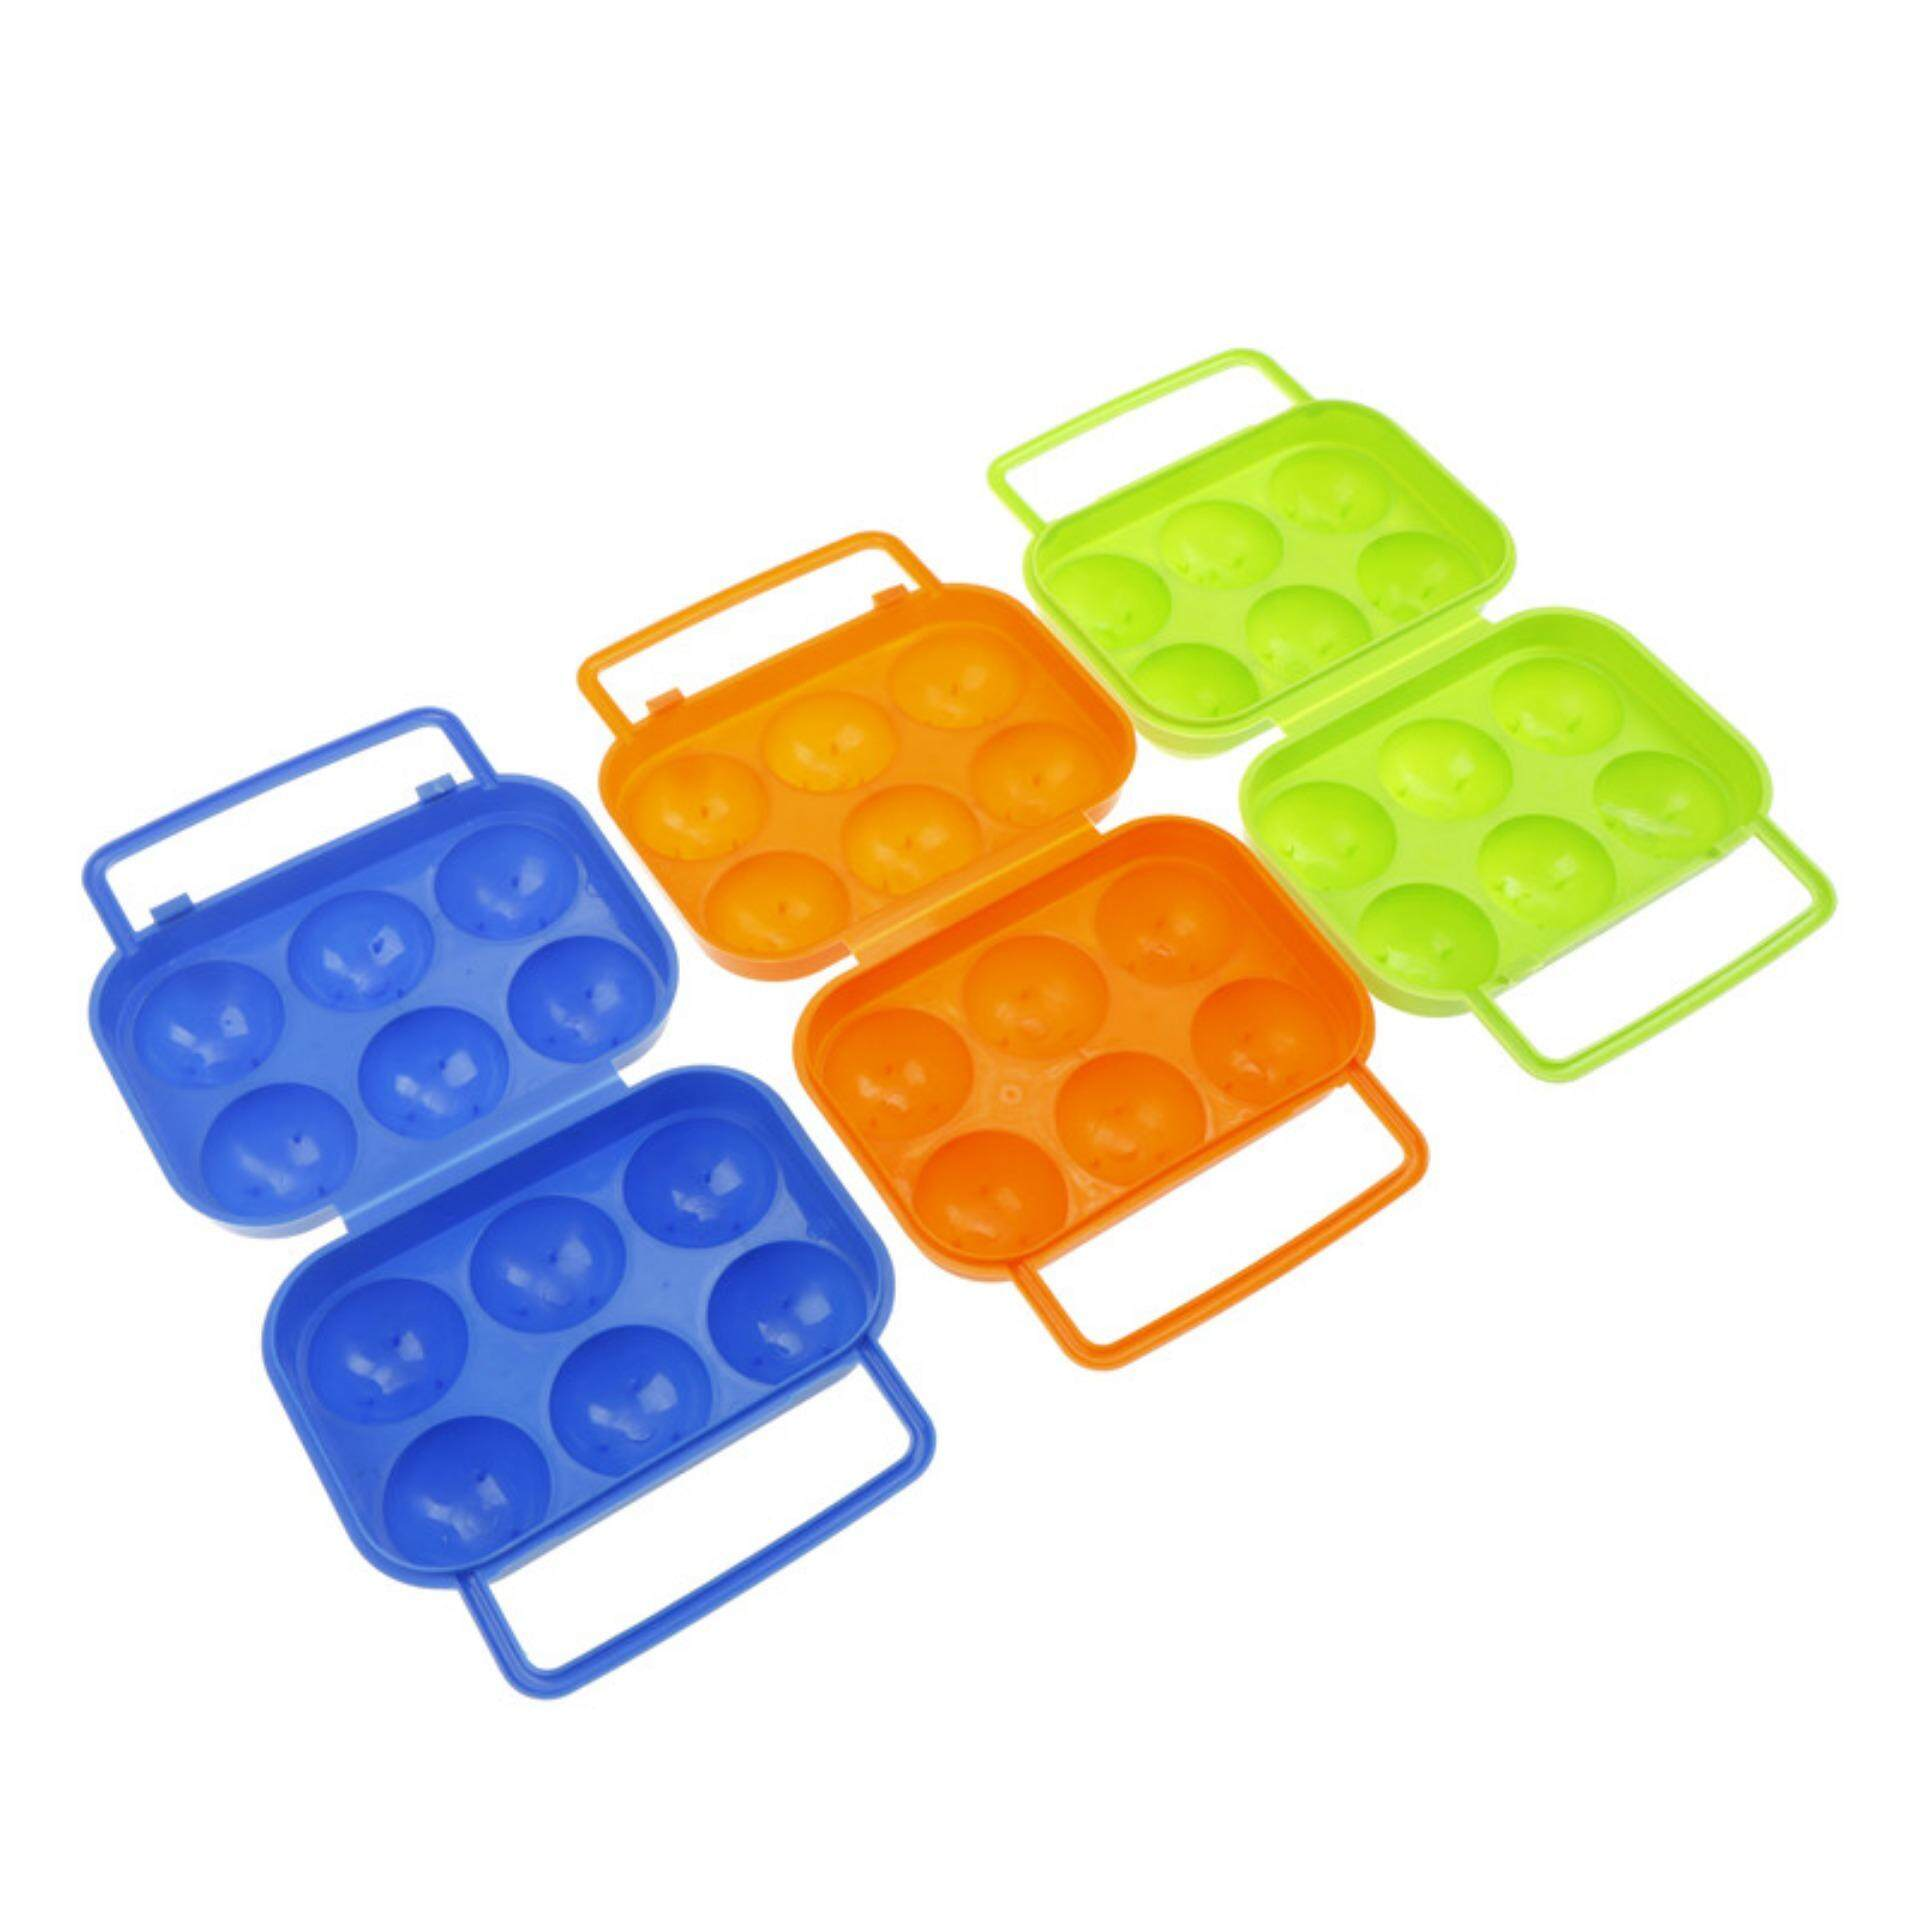 Female Warrior Refrigerator Egg Storage Folding Box 6 Case Outdoor Portable Container Tray .